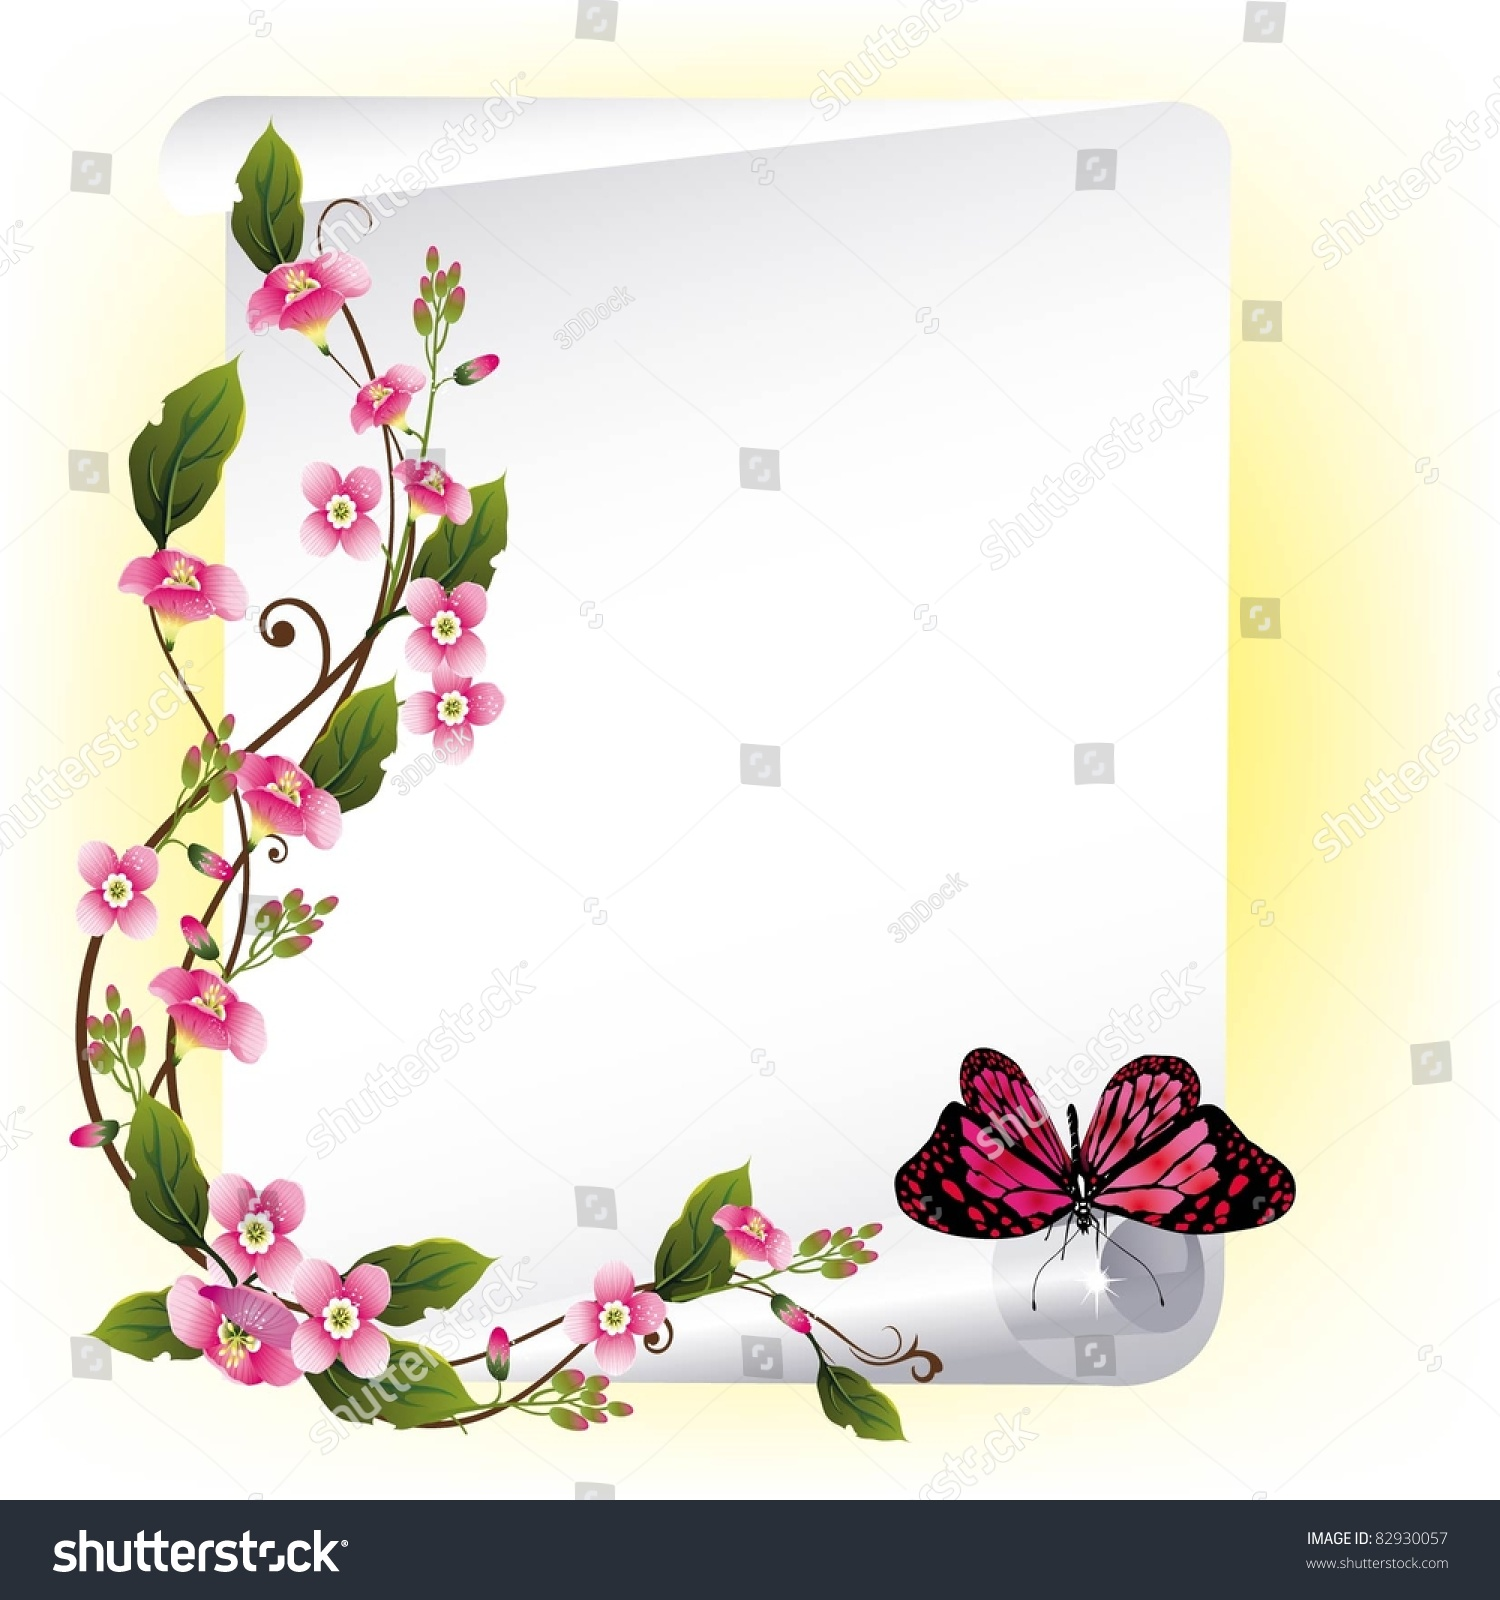 Vector Frame Beautiful Flowers Butterfly Stock Vector HD (Royalty ...